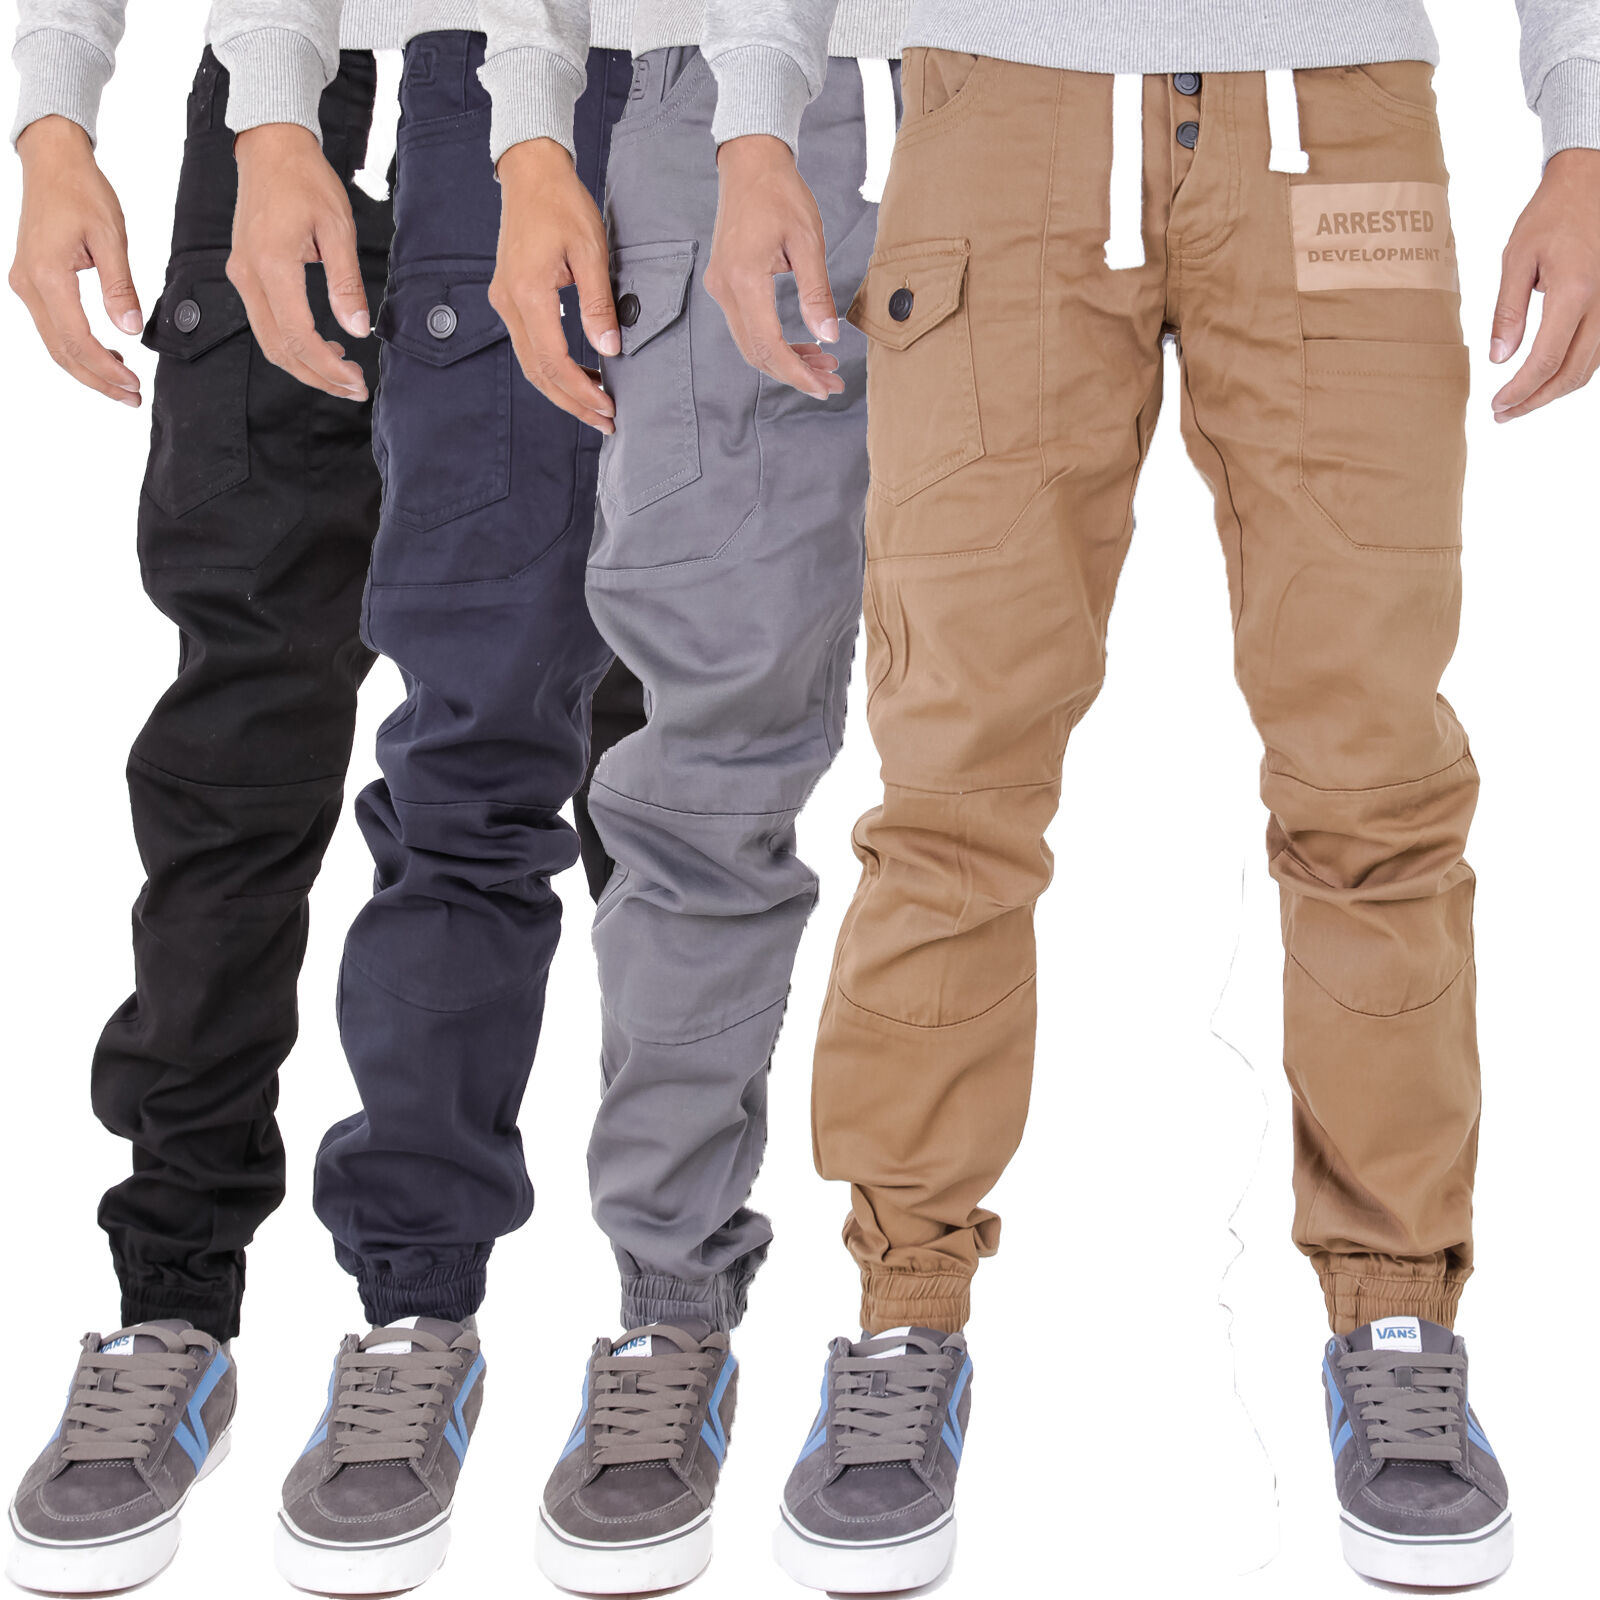 Mens Branded Arrested Development Skinny Tapered Fit Navy Chino Sizes 28-40